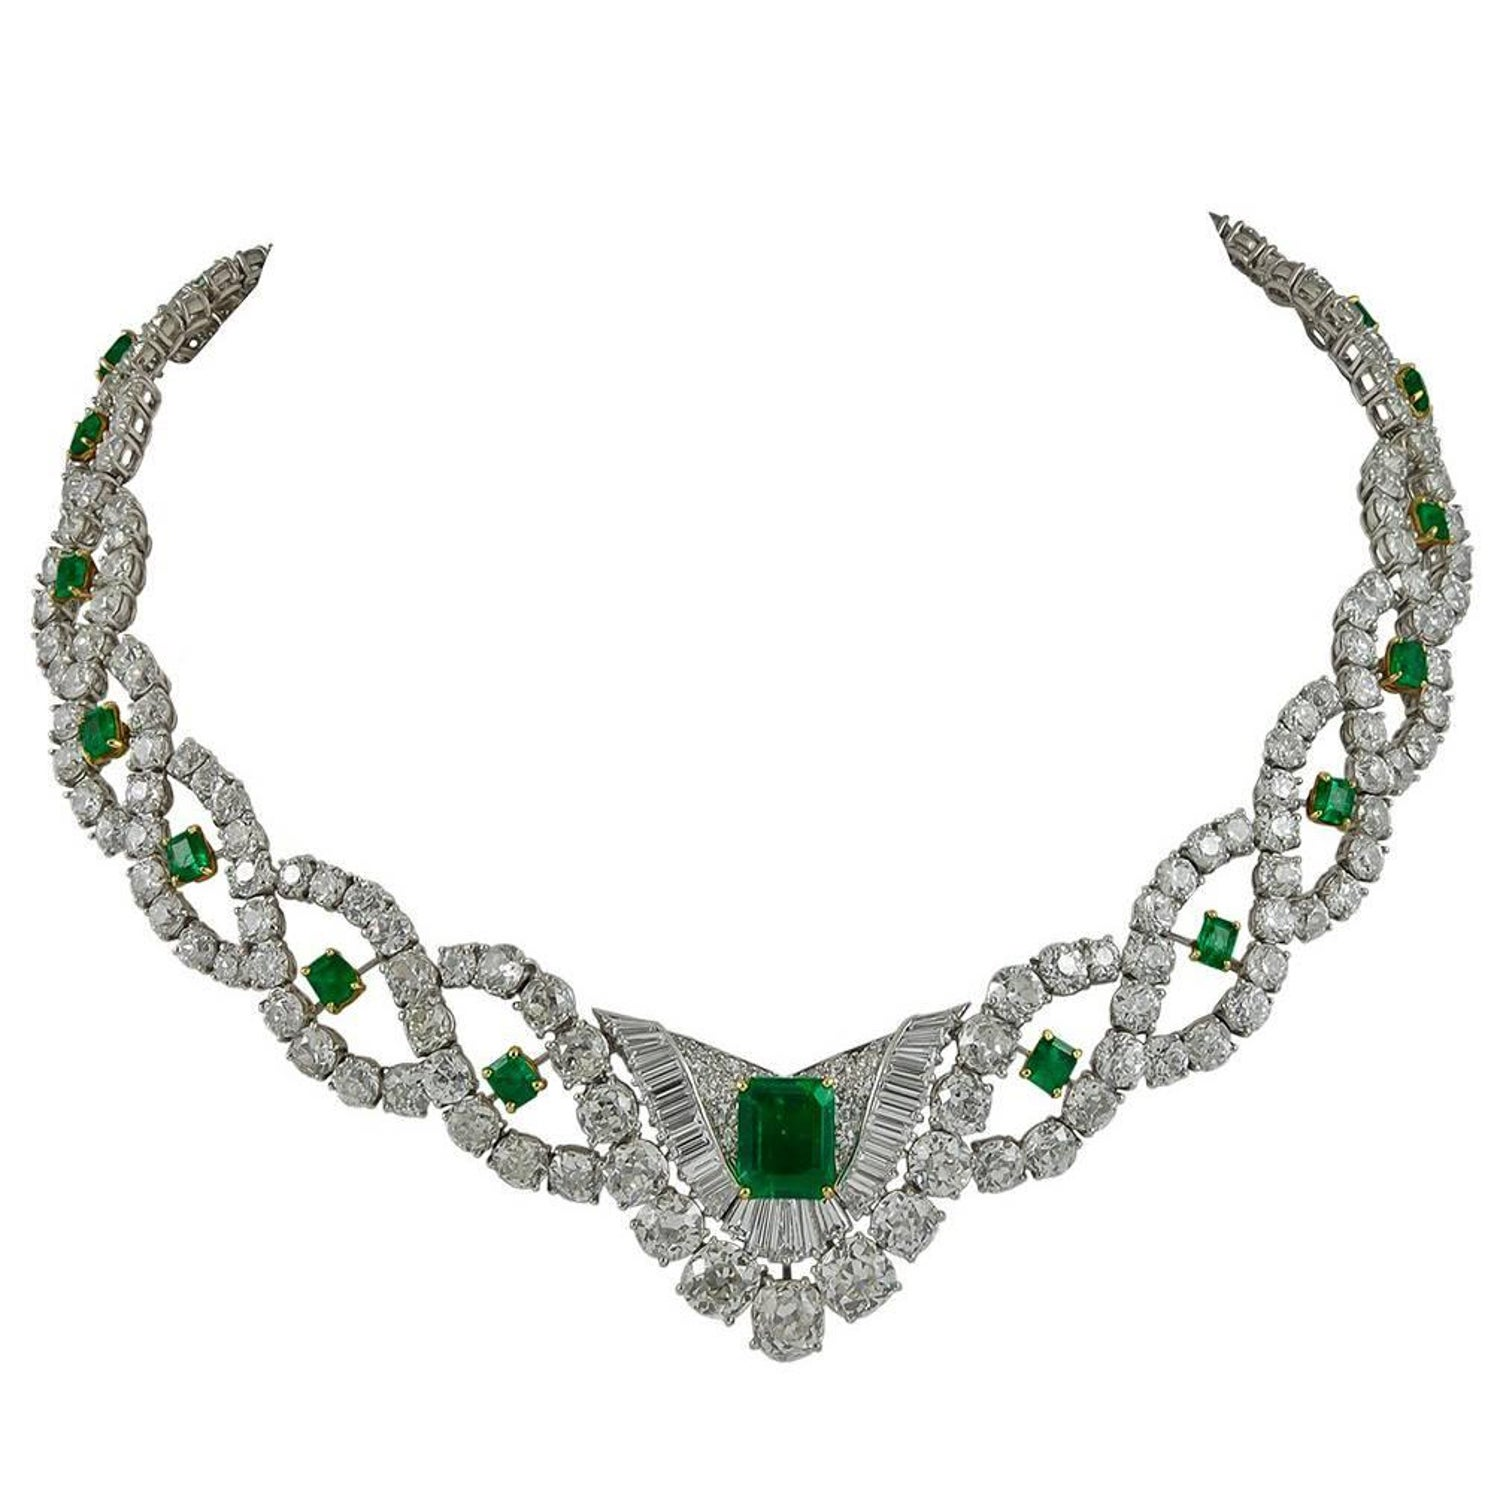 diamond false emerald upscale necklace scale oracle colombian product magician magicien and shop cartier crop subsampling